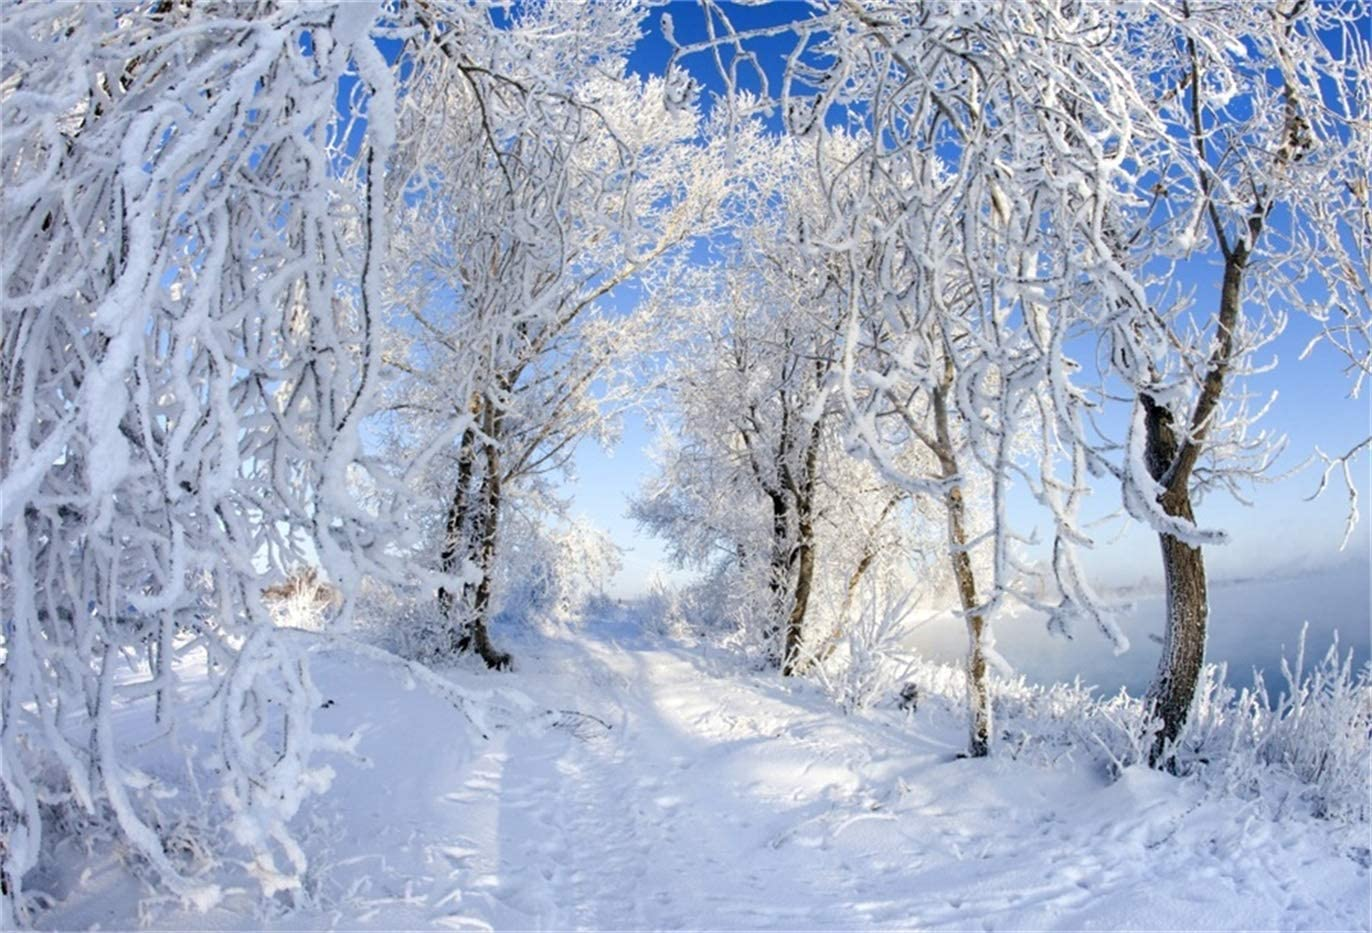 GoEoo 10x8ft Winter Forest Frozen Tree Background Snowy Landscape Photography Backdrop Woods Snow Covered Tree Mountain Skiing Snowfield Photo Studio Props Christmas Holiday Tour New Year Vinyl Banner